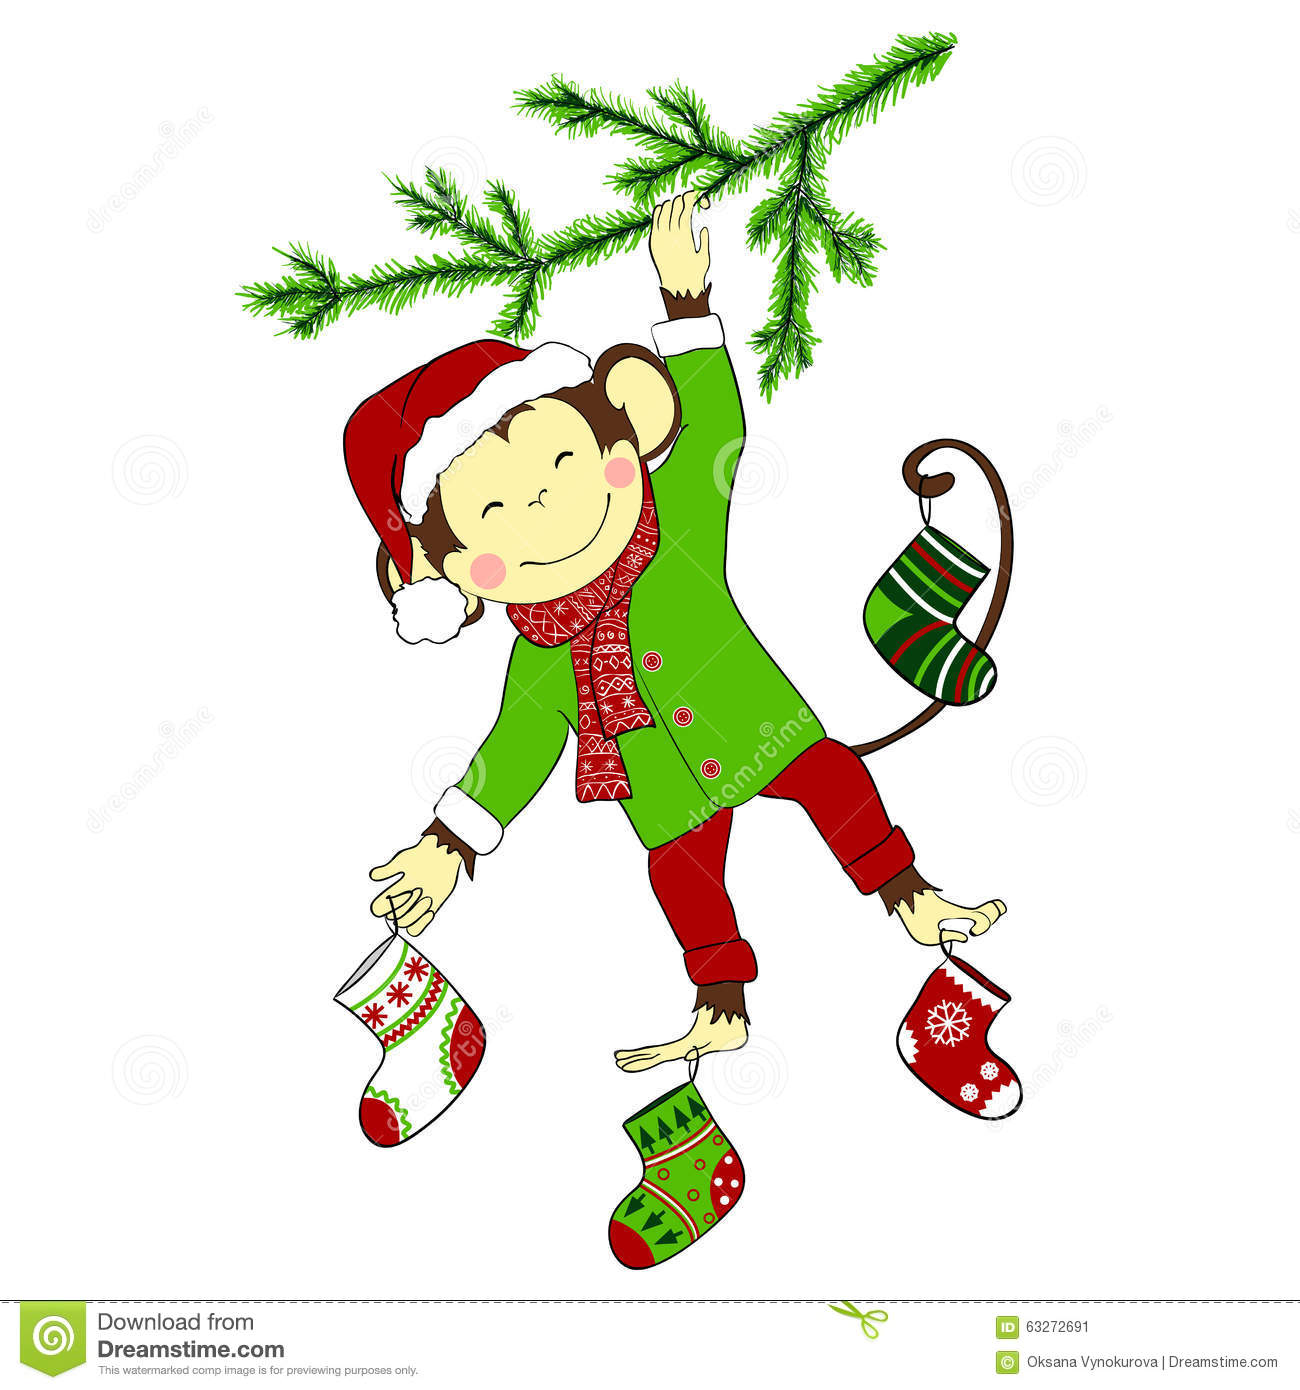 Cartoon Character Design Price : Christmas monkey hanging on tree and holding